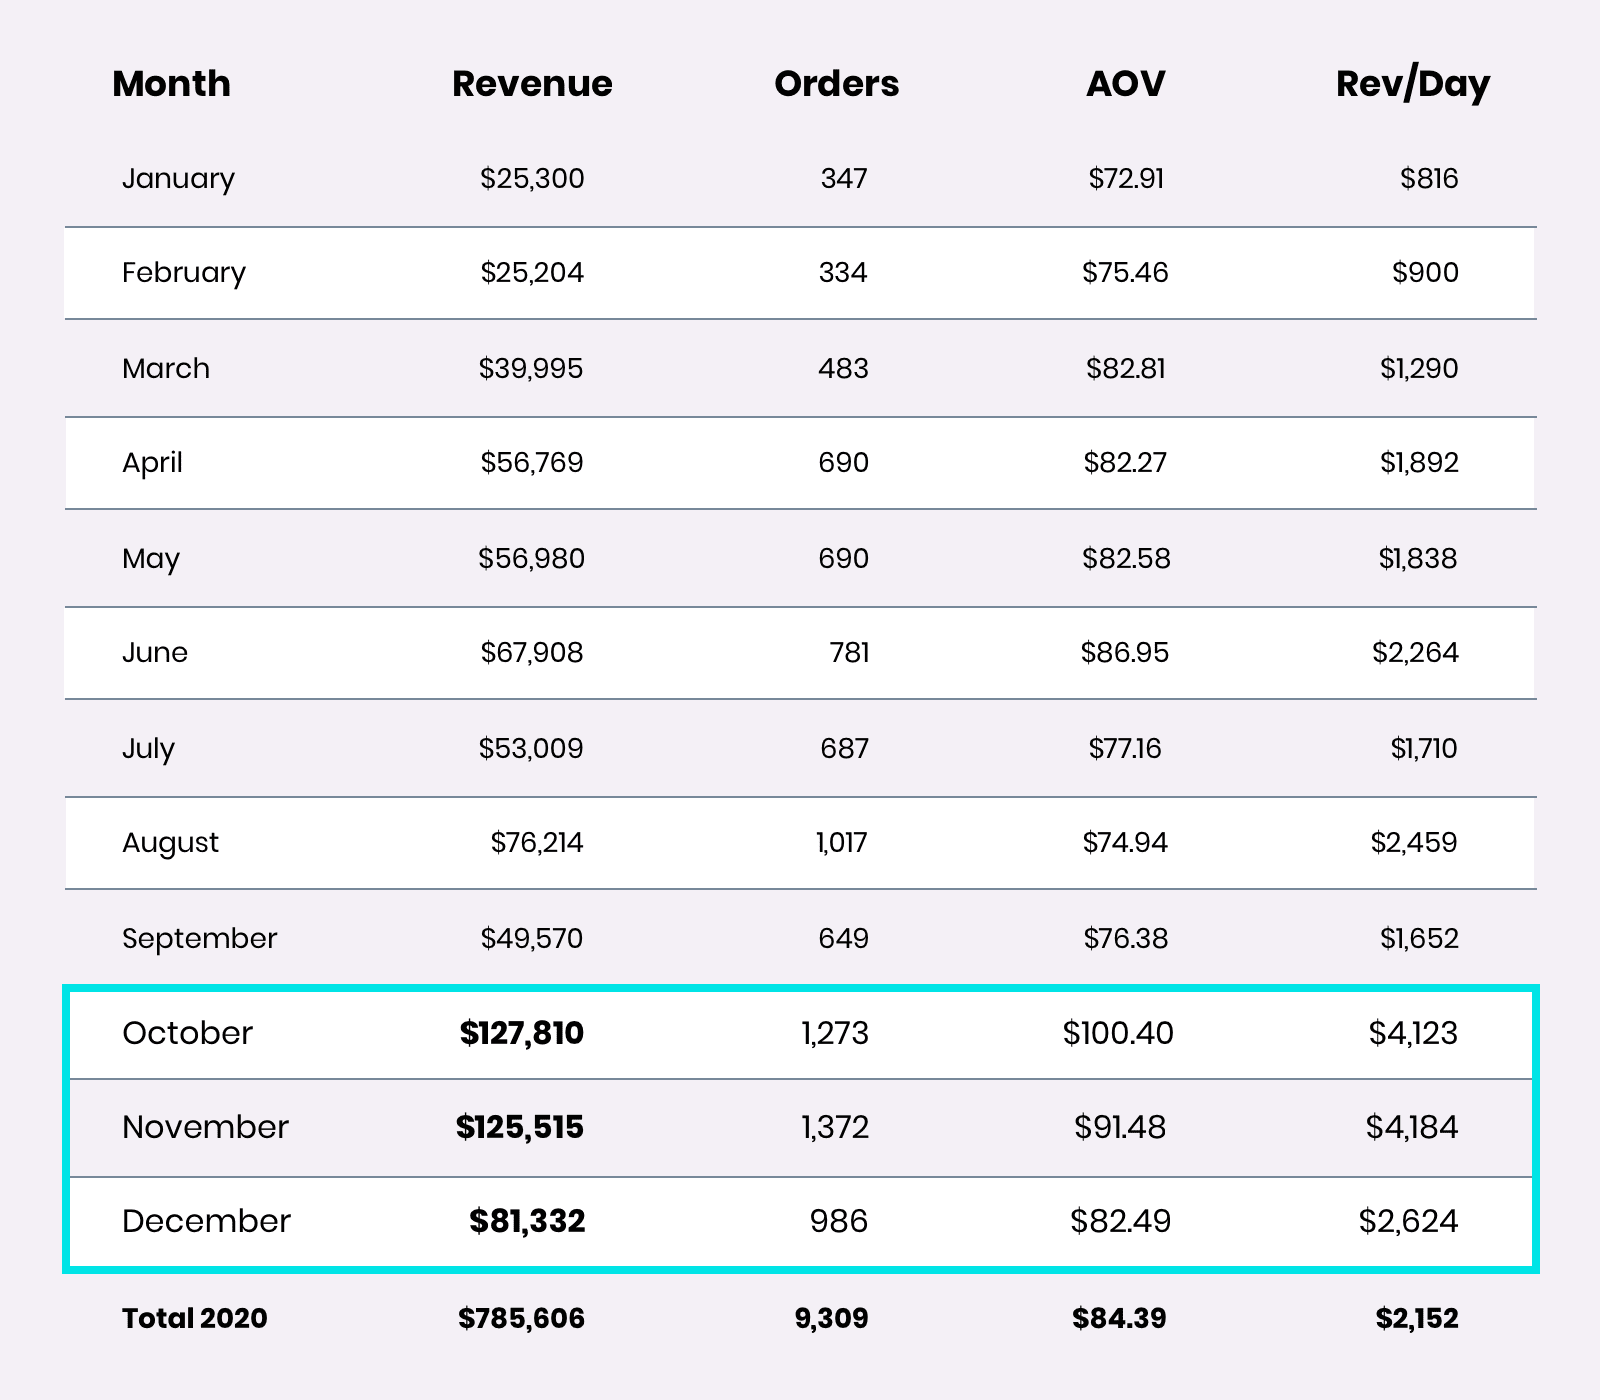 email revenue for Bambu Earth in Q4 is much higher than any other time of the year